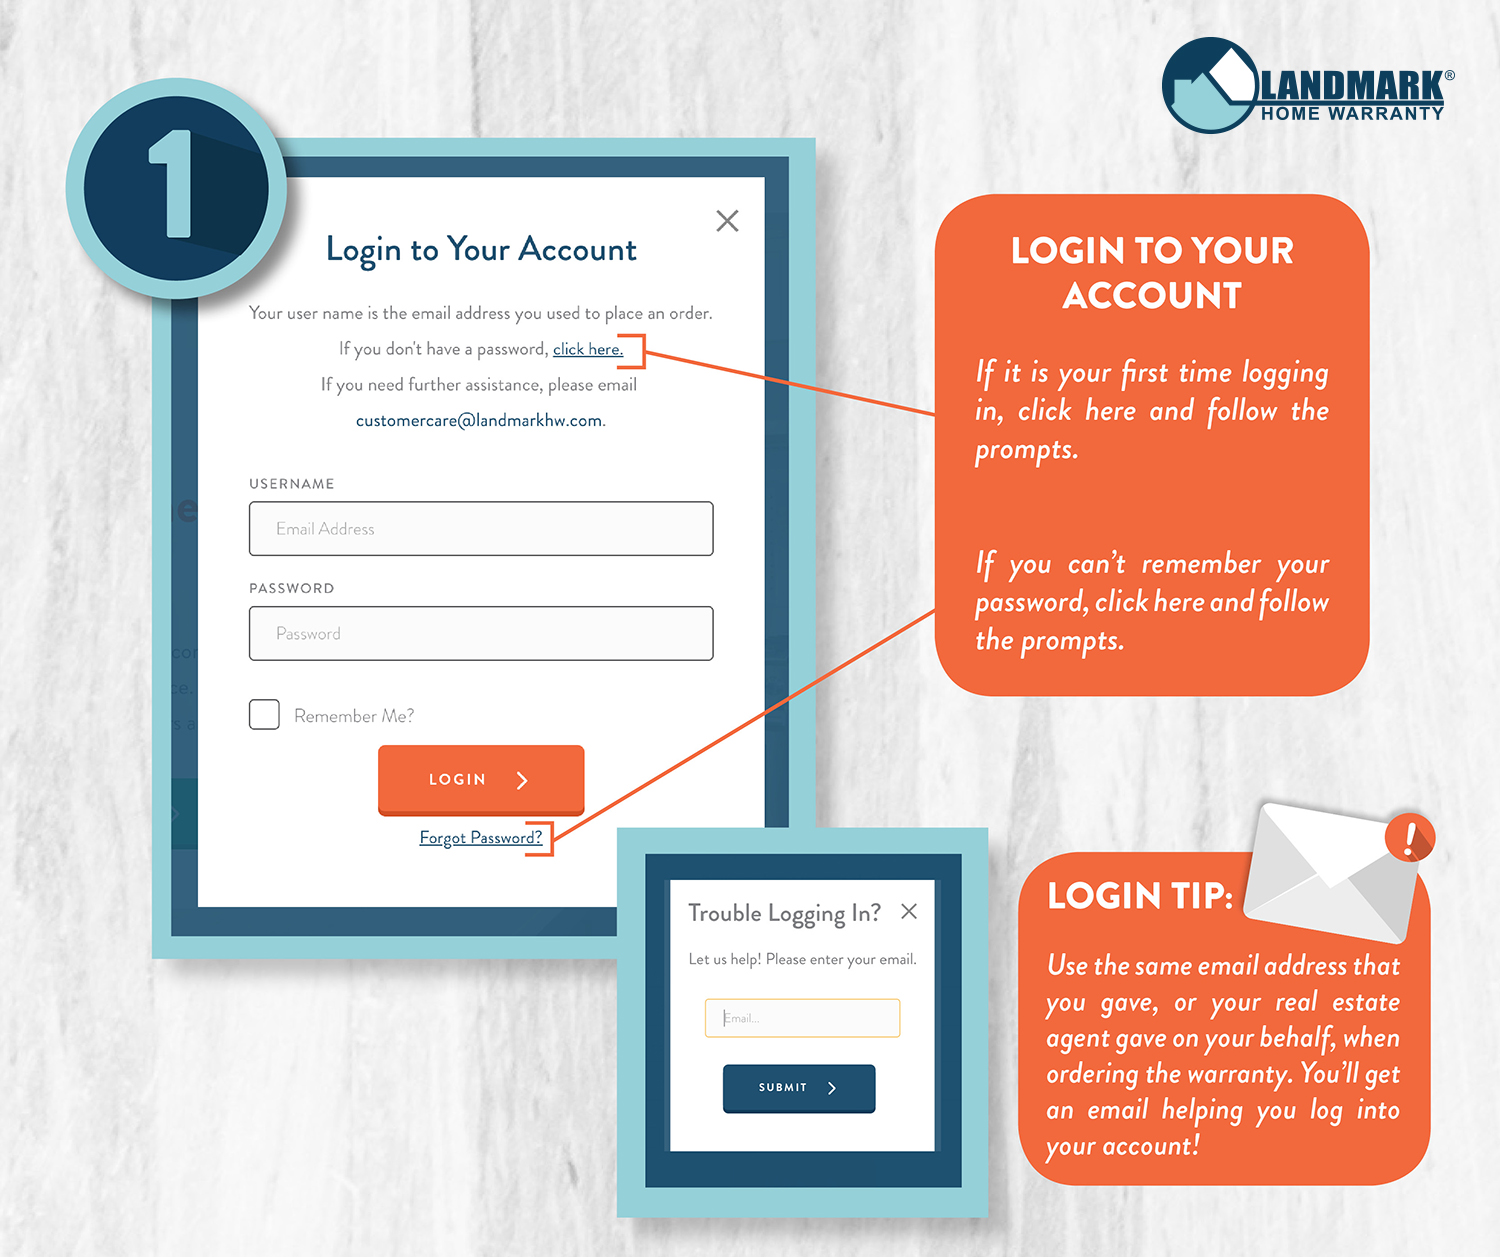 Step one: Log into your account on Landmark Home Warranty's website.